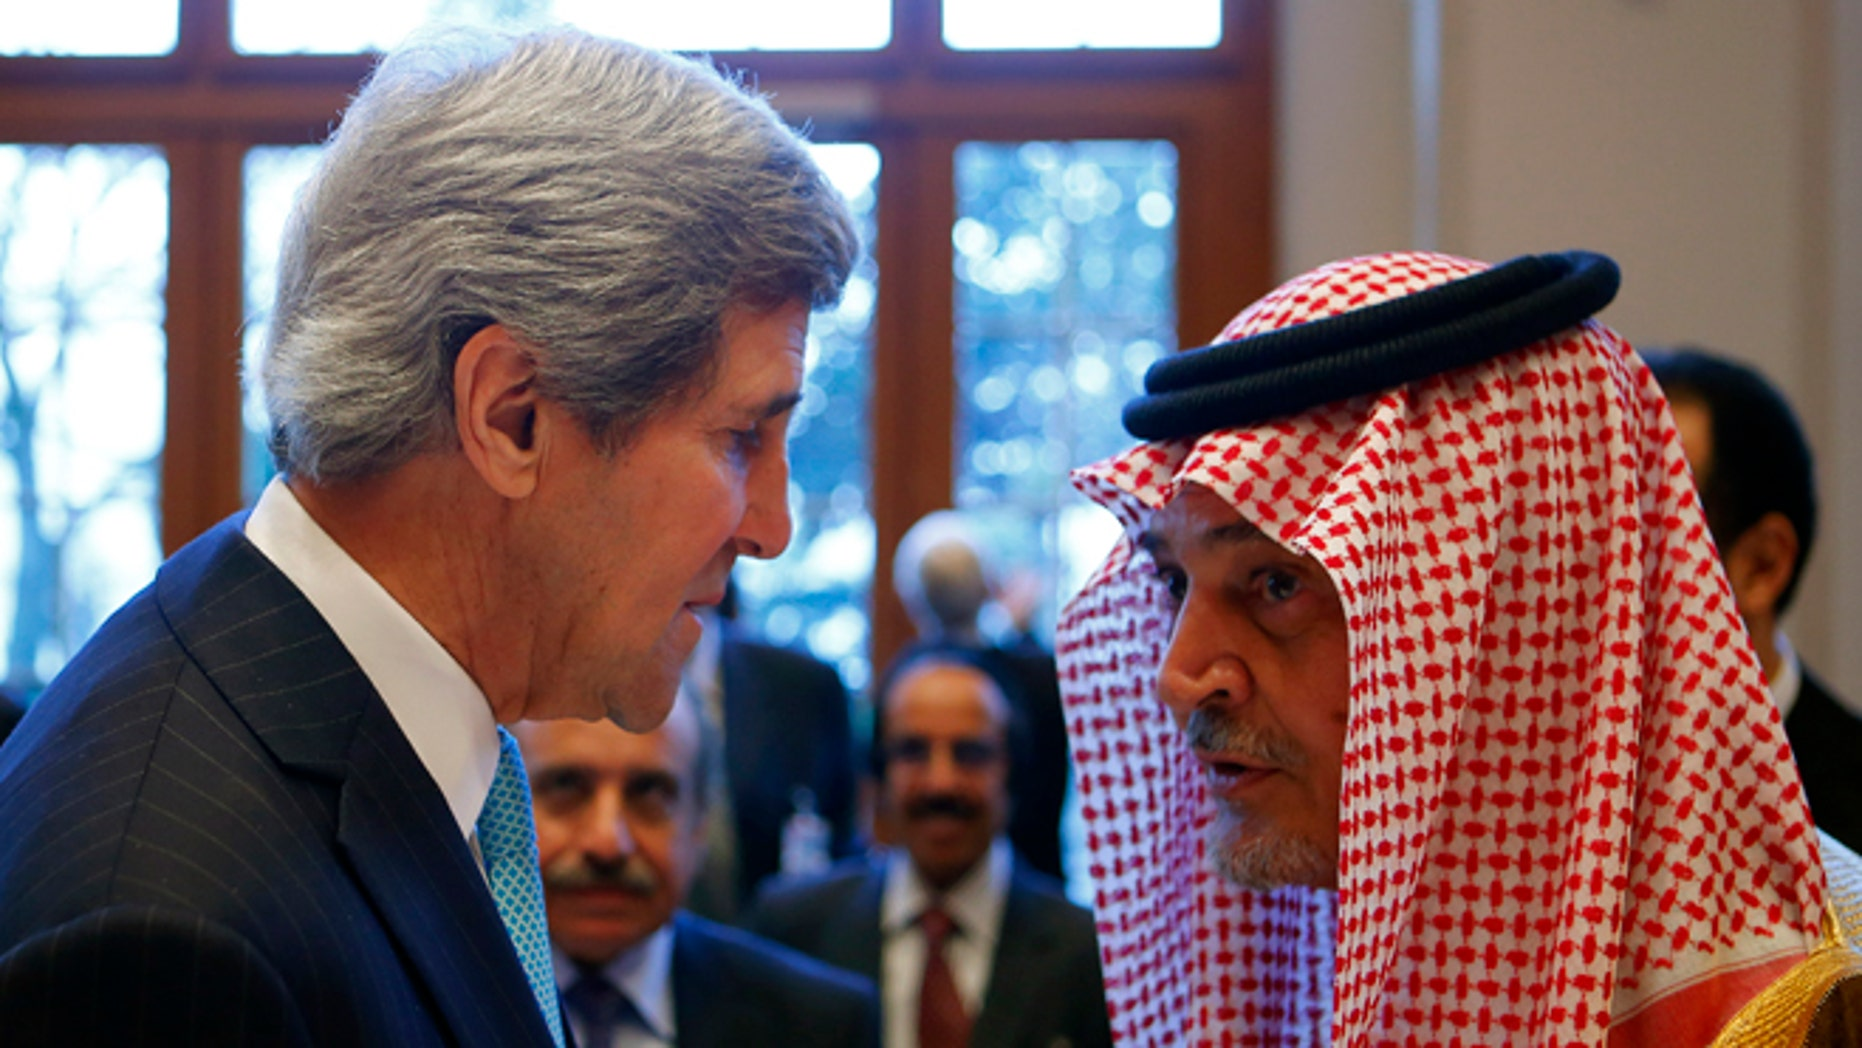 Jan. 22, 2014: Secretary of State John Kerry talks to Saudi Arabia's Foreign Minister Prince Saud al-Faisal in Montreux, Switzerland.